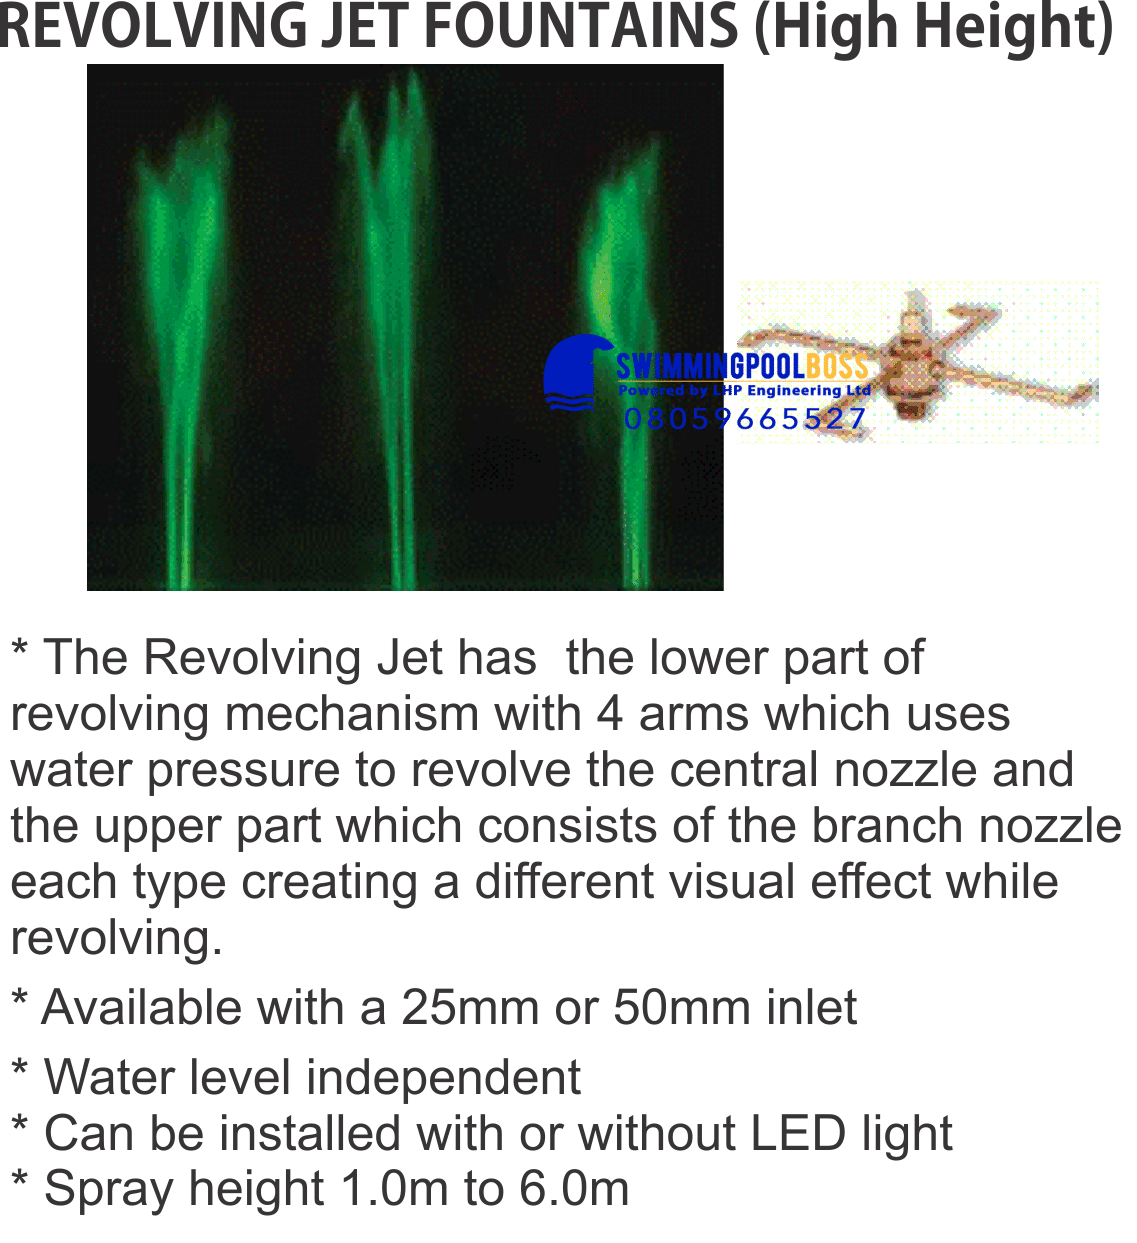 REVOLVING JET FOUNTAINS